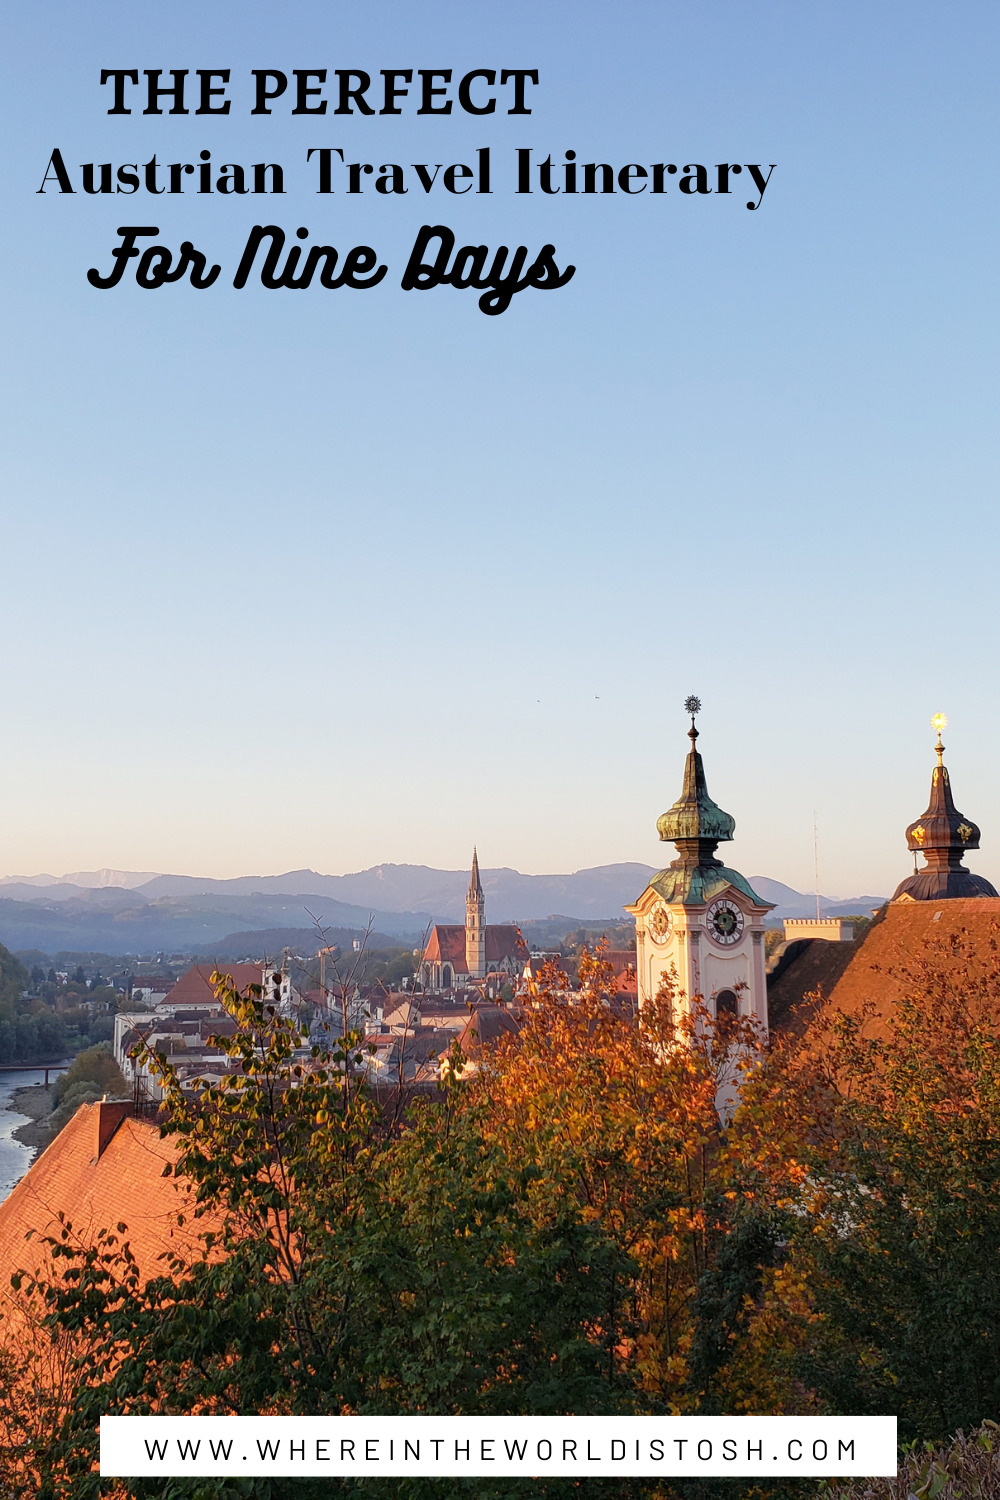 The Perfect Austrian Travel Itinerary For Nine Days